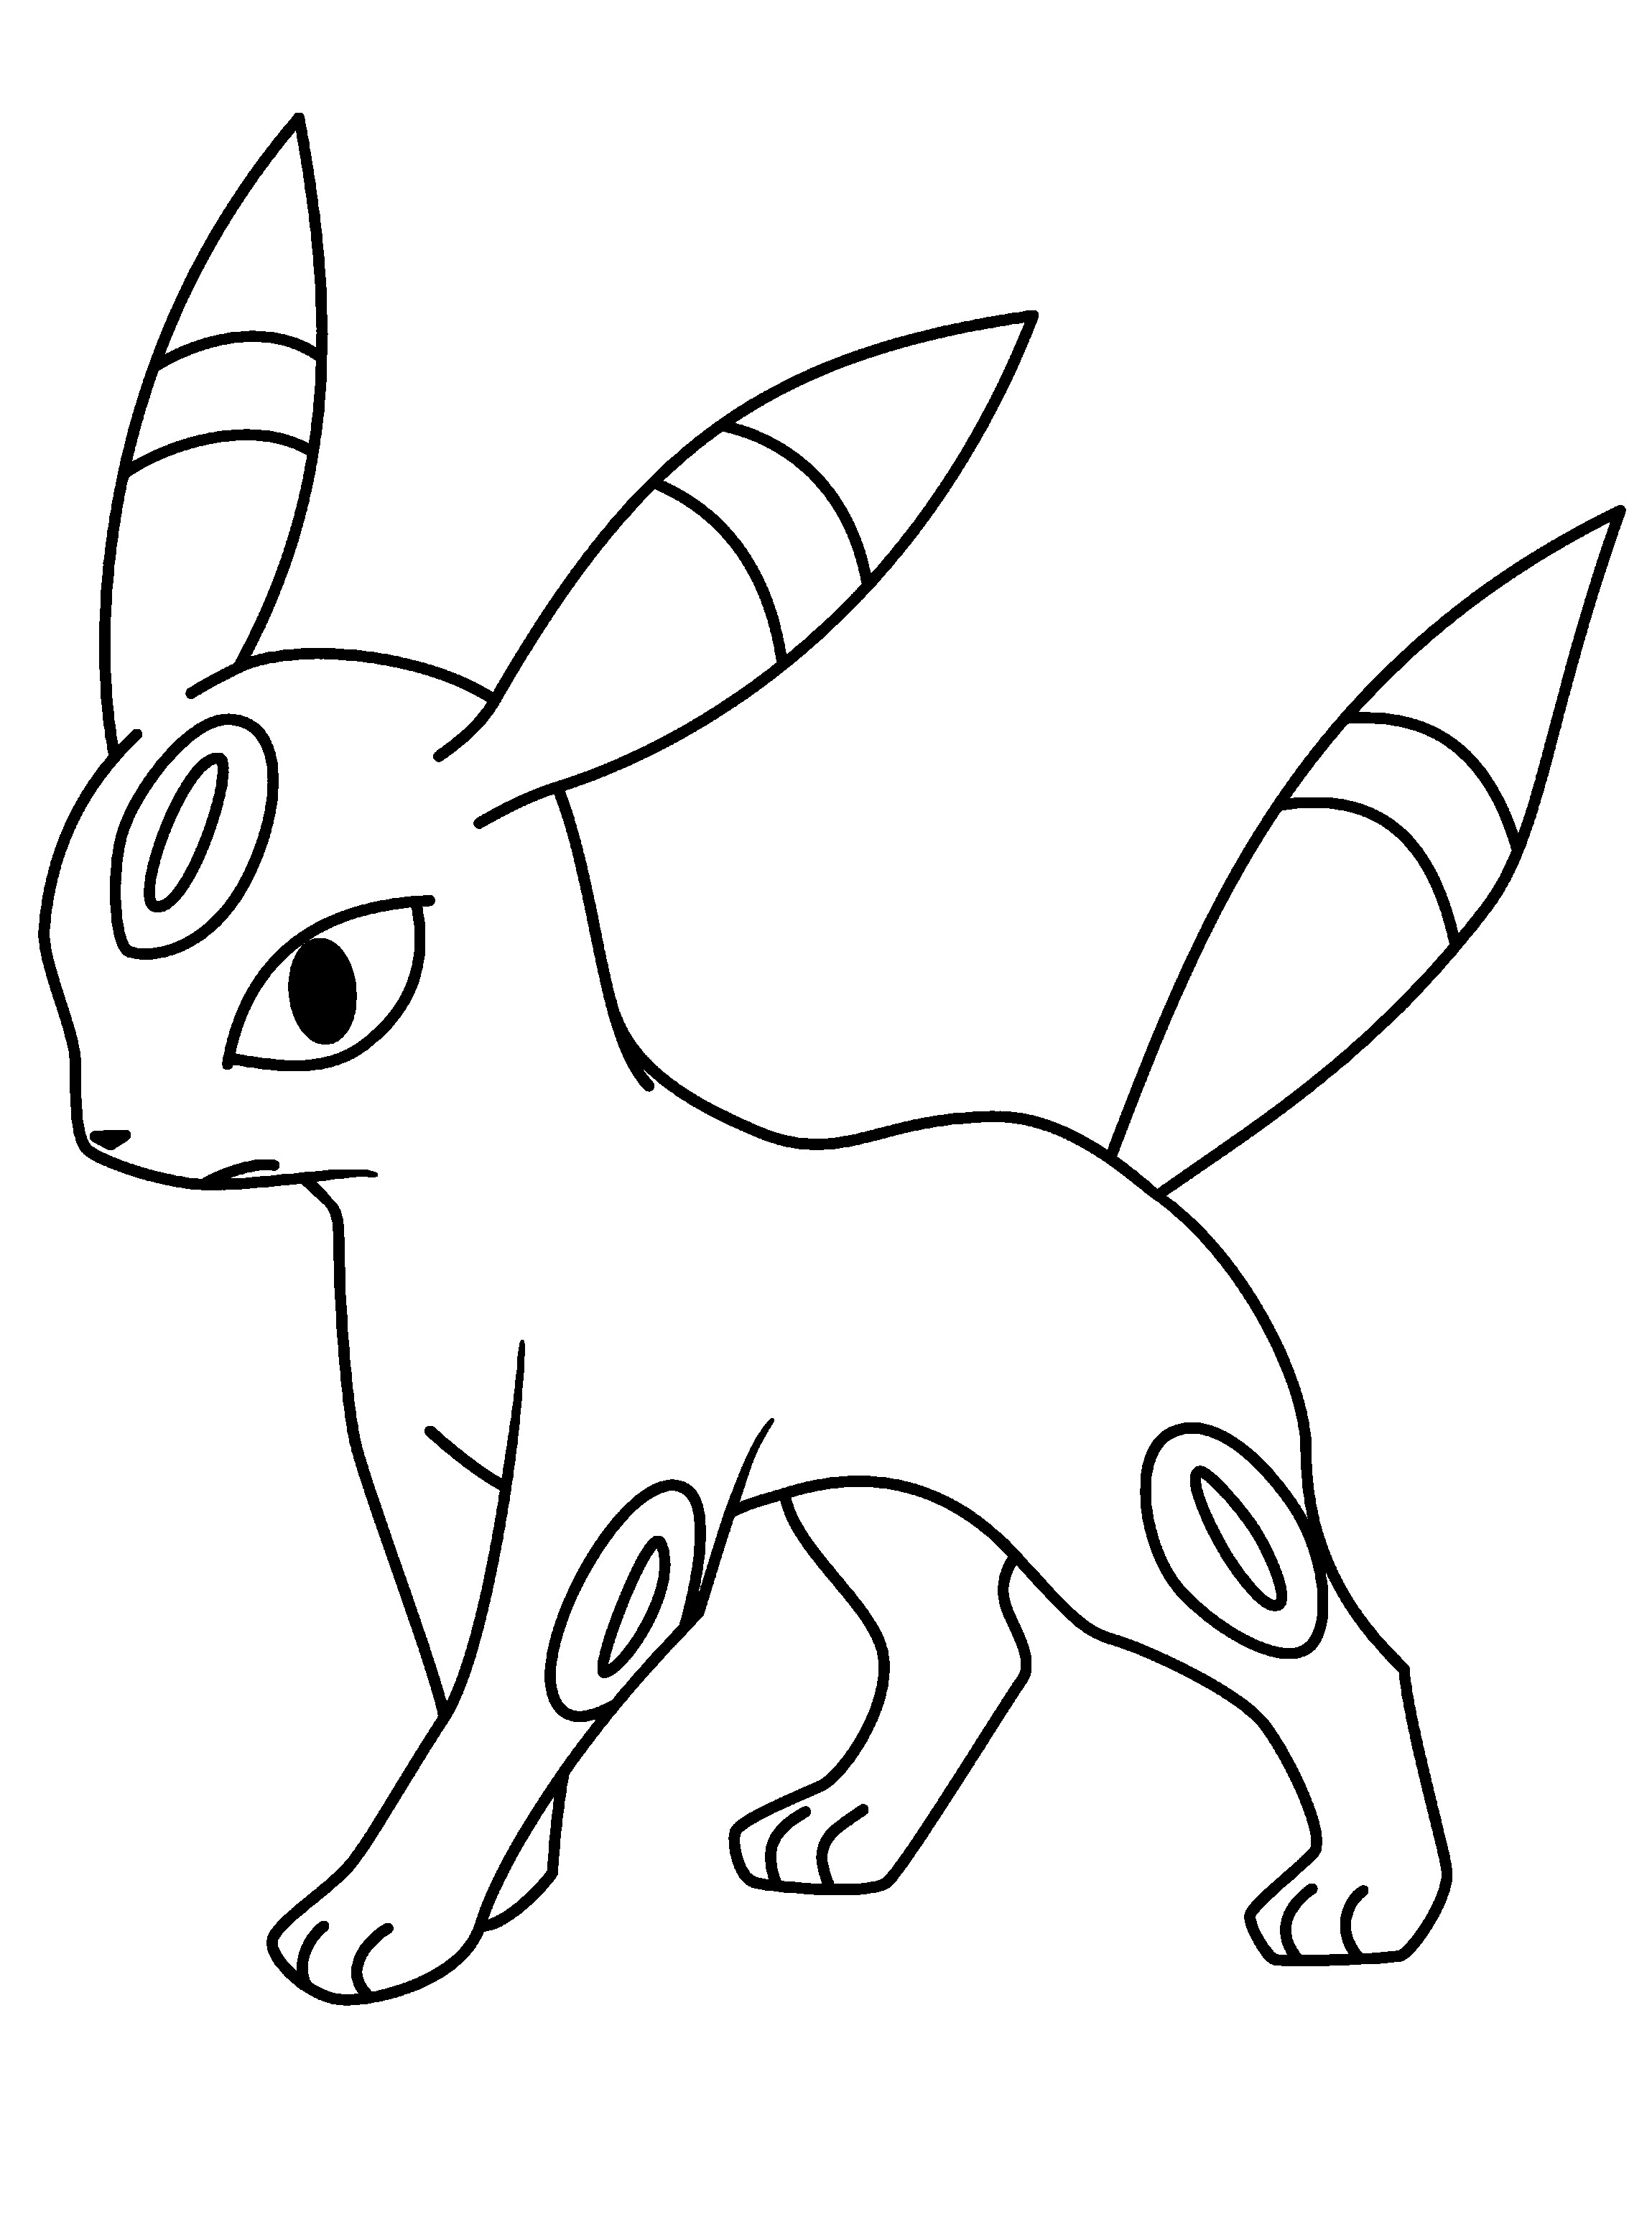 Coloring pages for girls 4 coloring kids for Fun coloring pages for girls